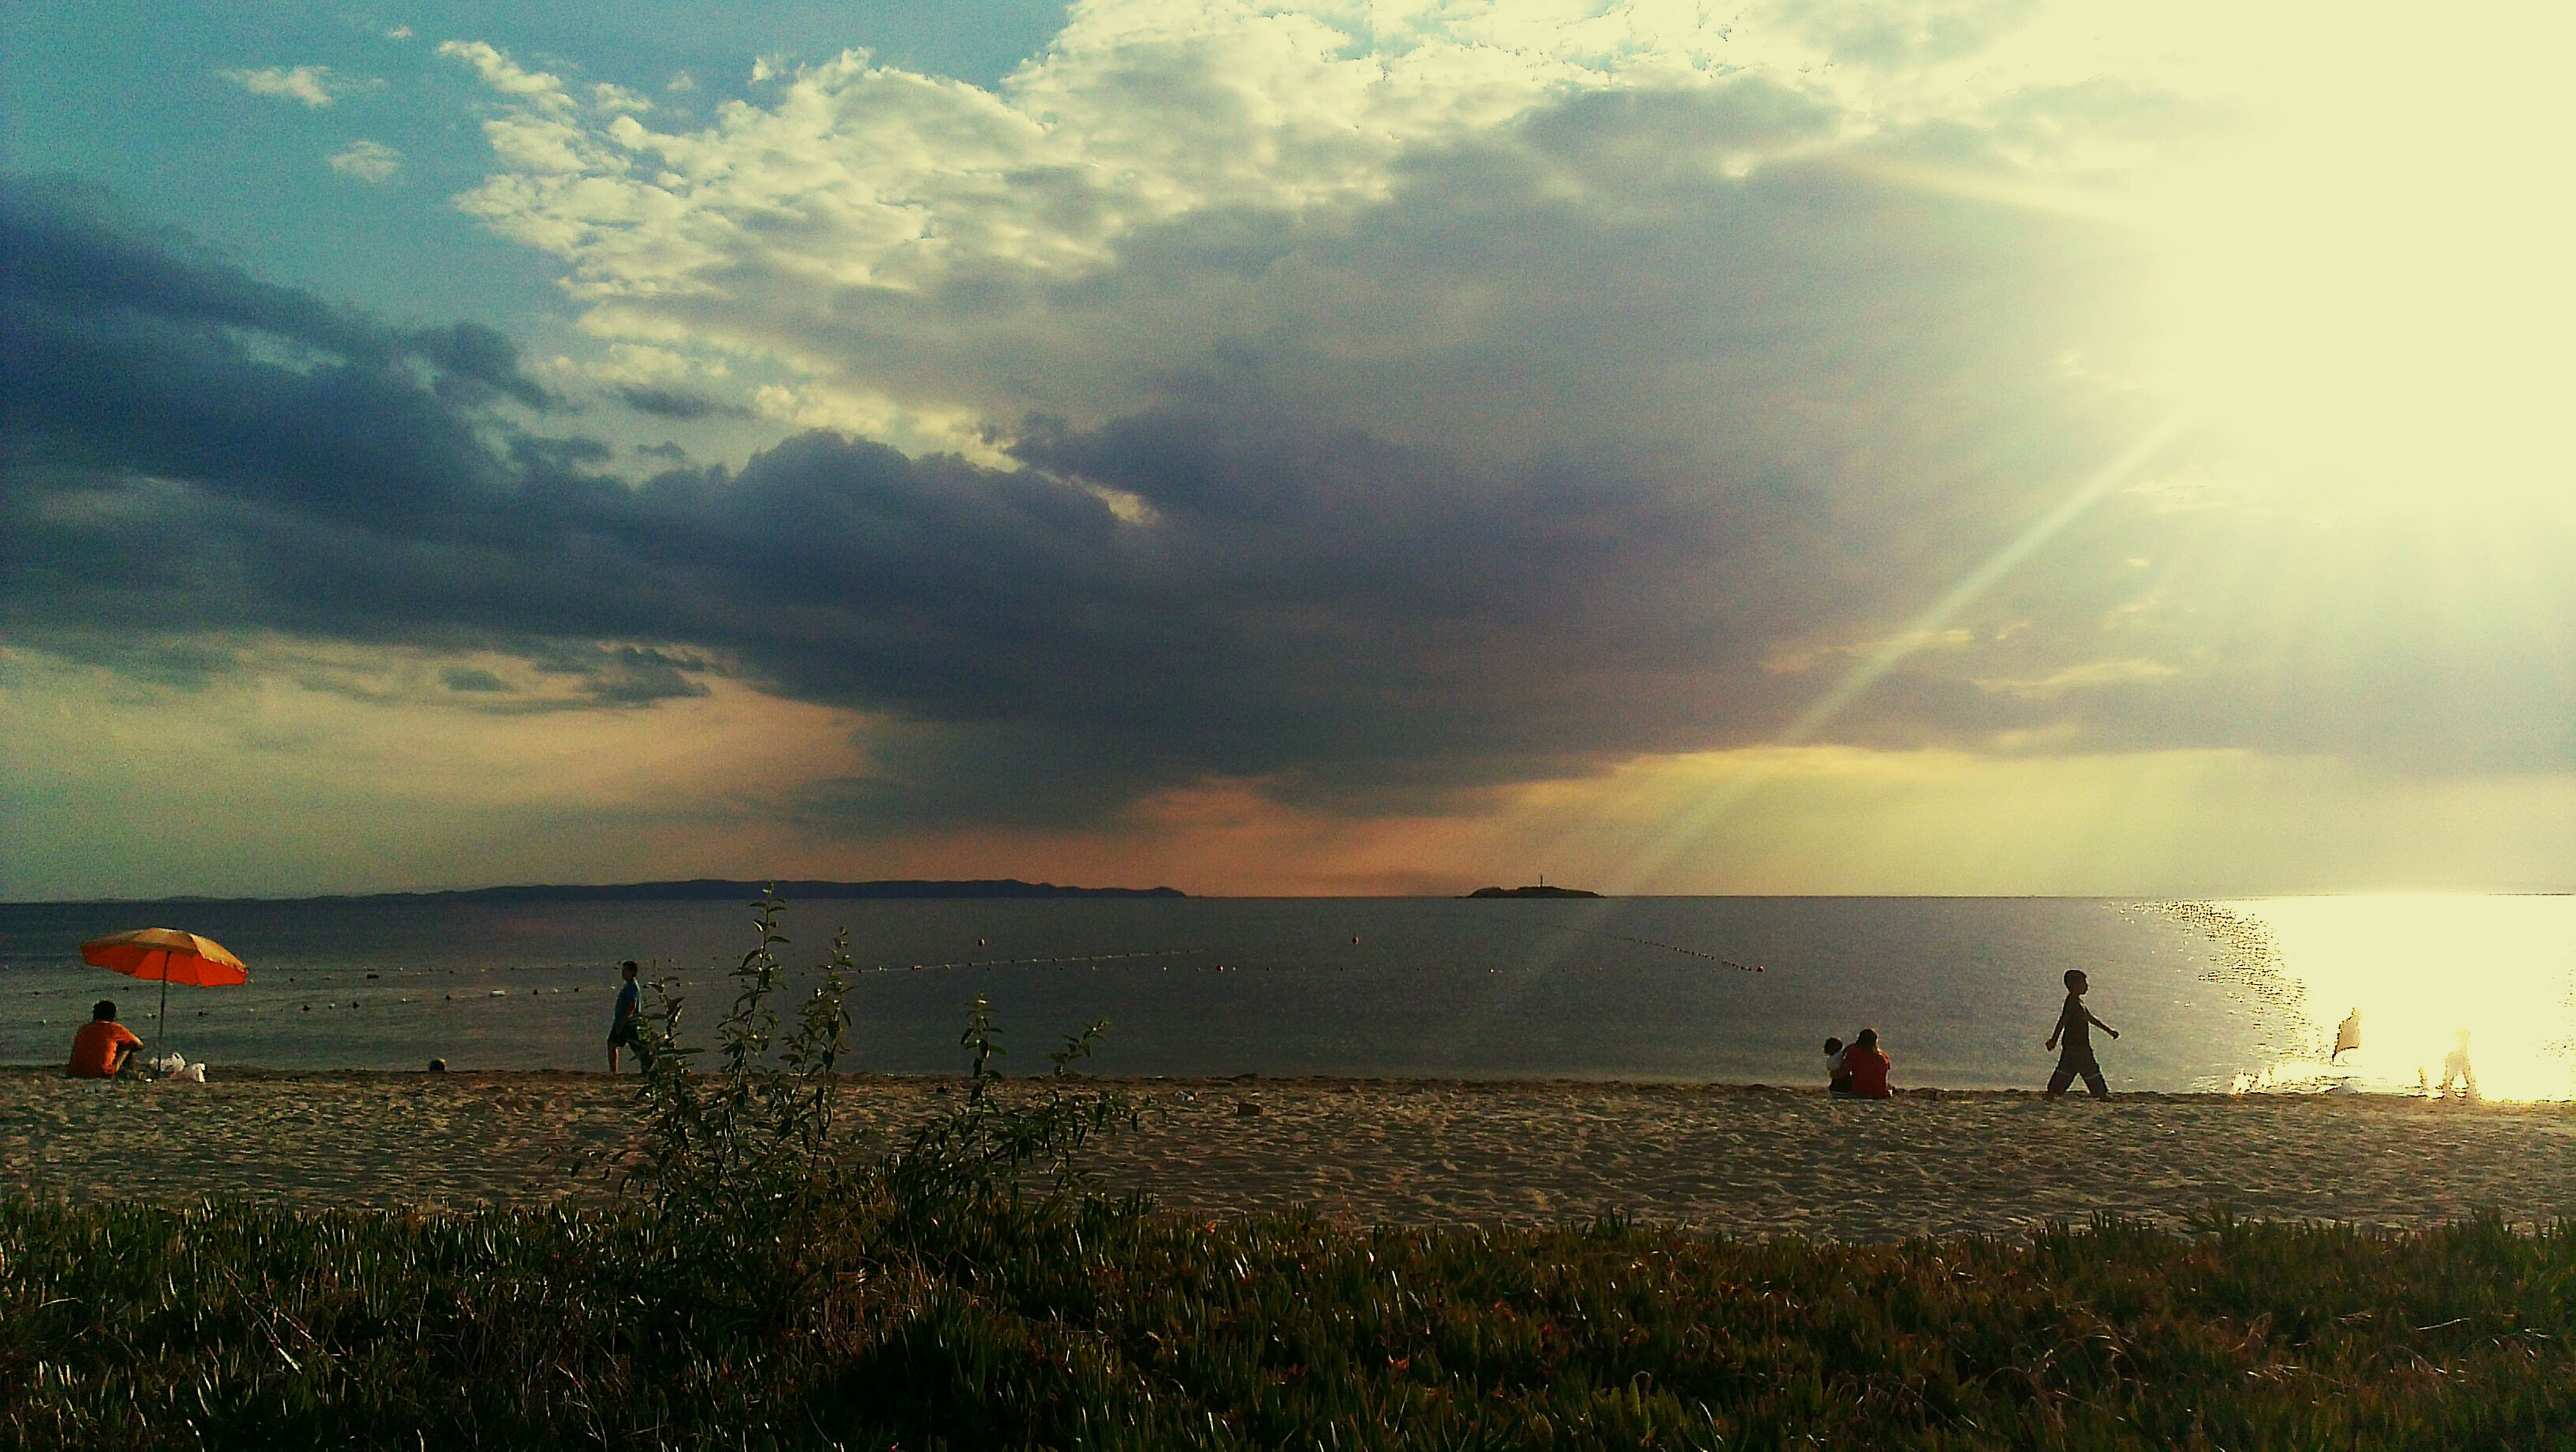 sky, water, sea, horizon over water, scenics, cloud - sky, leisure activity, beauty in nature, tranquil scene, beach, lifestyles, tranquility, nature, men, shore, sun, cloud, grass, sunset